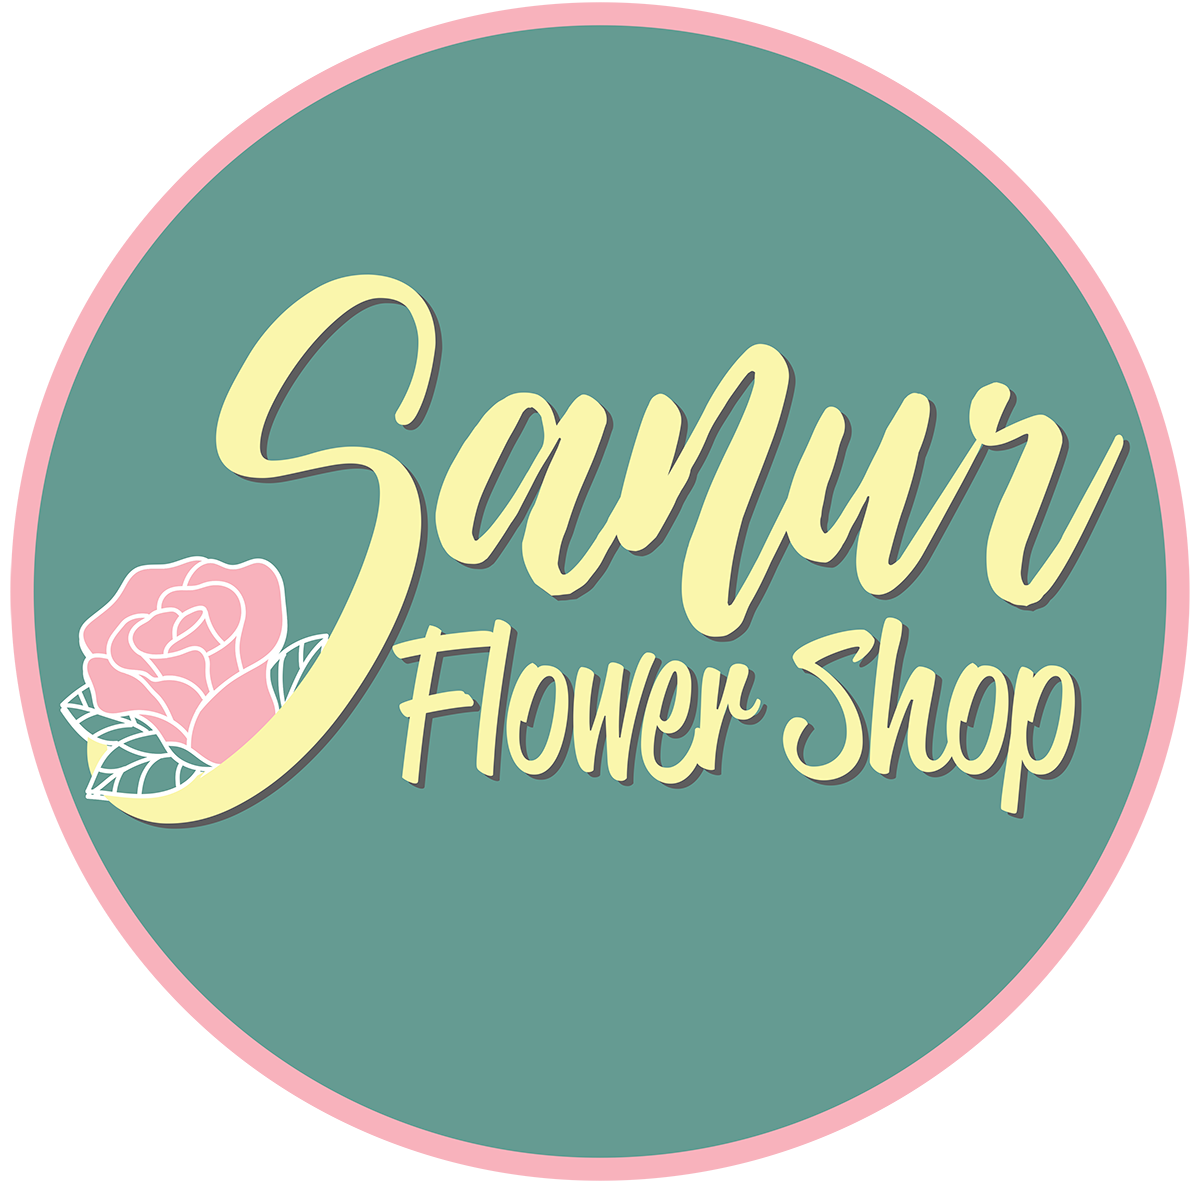 Sanur Flower Shop